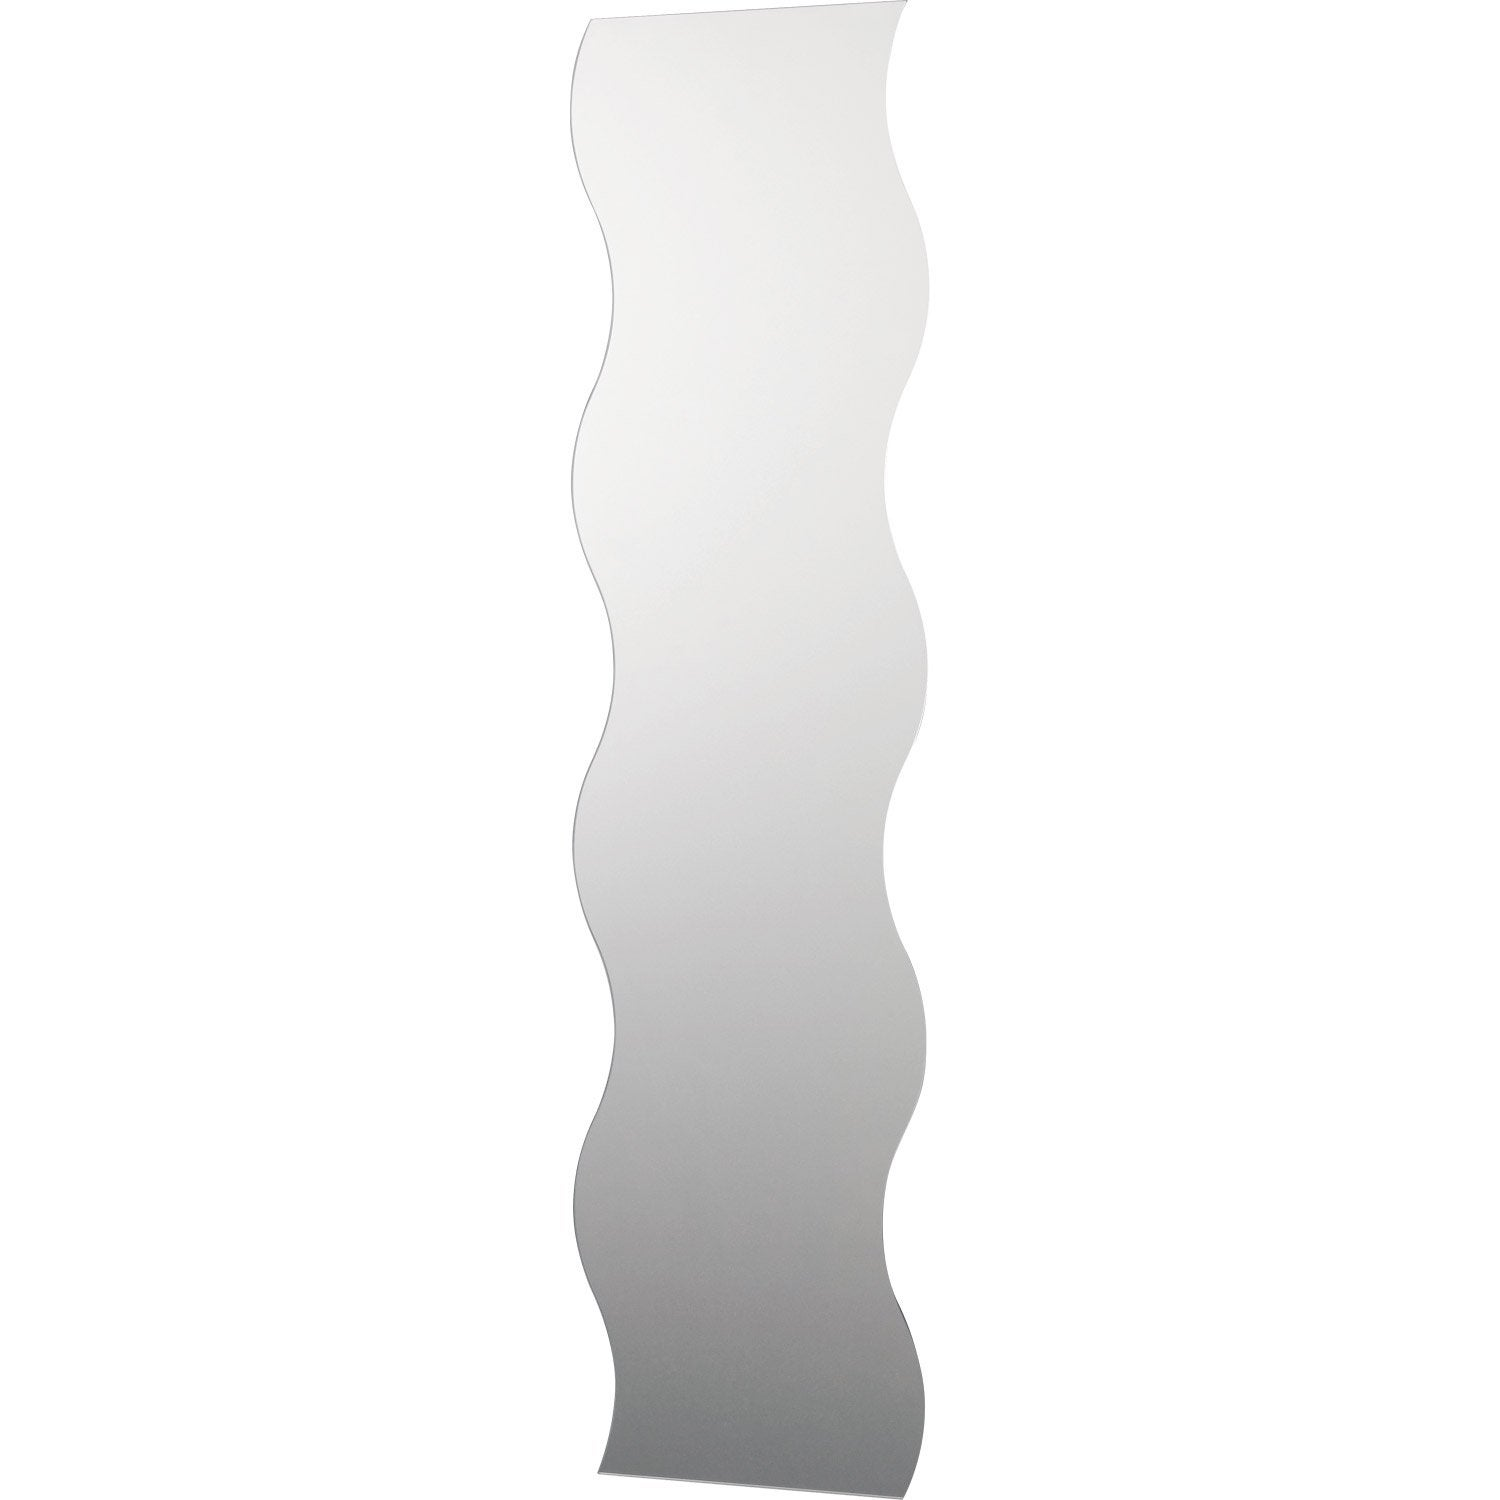 Miroir vague 120 x 30 cm leroy merlin - Leroy merlin mirroir ...